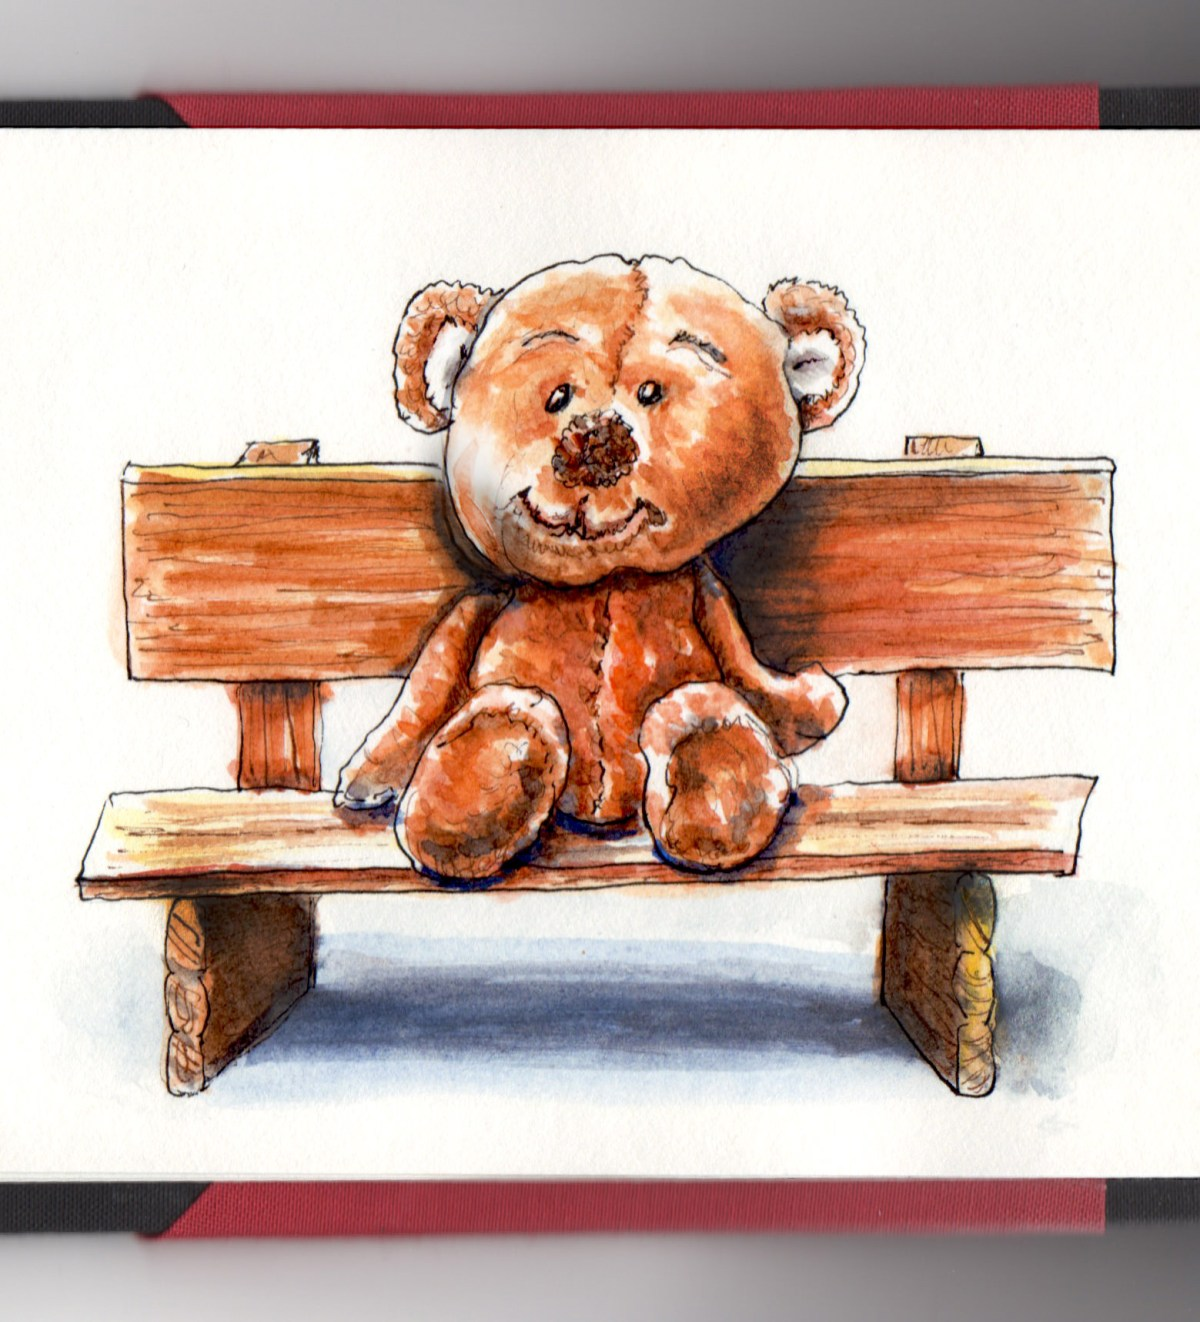 Day 12 - #WorldWatercolorGroup Bring Your Teddy Bear To Work or School Day